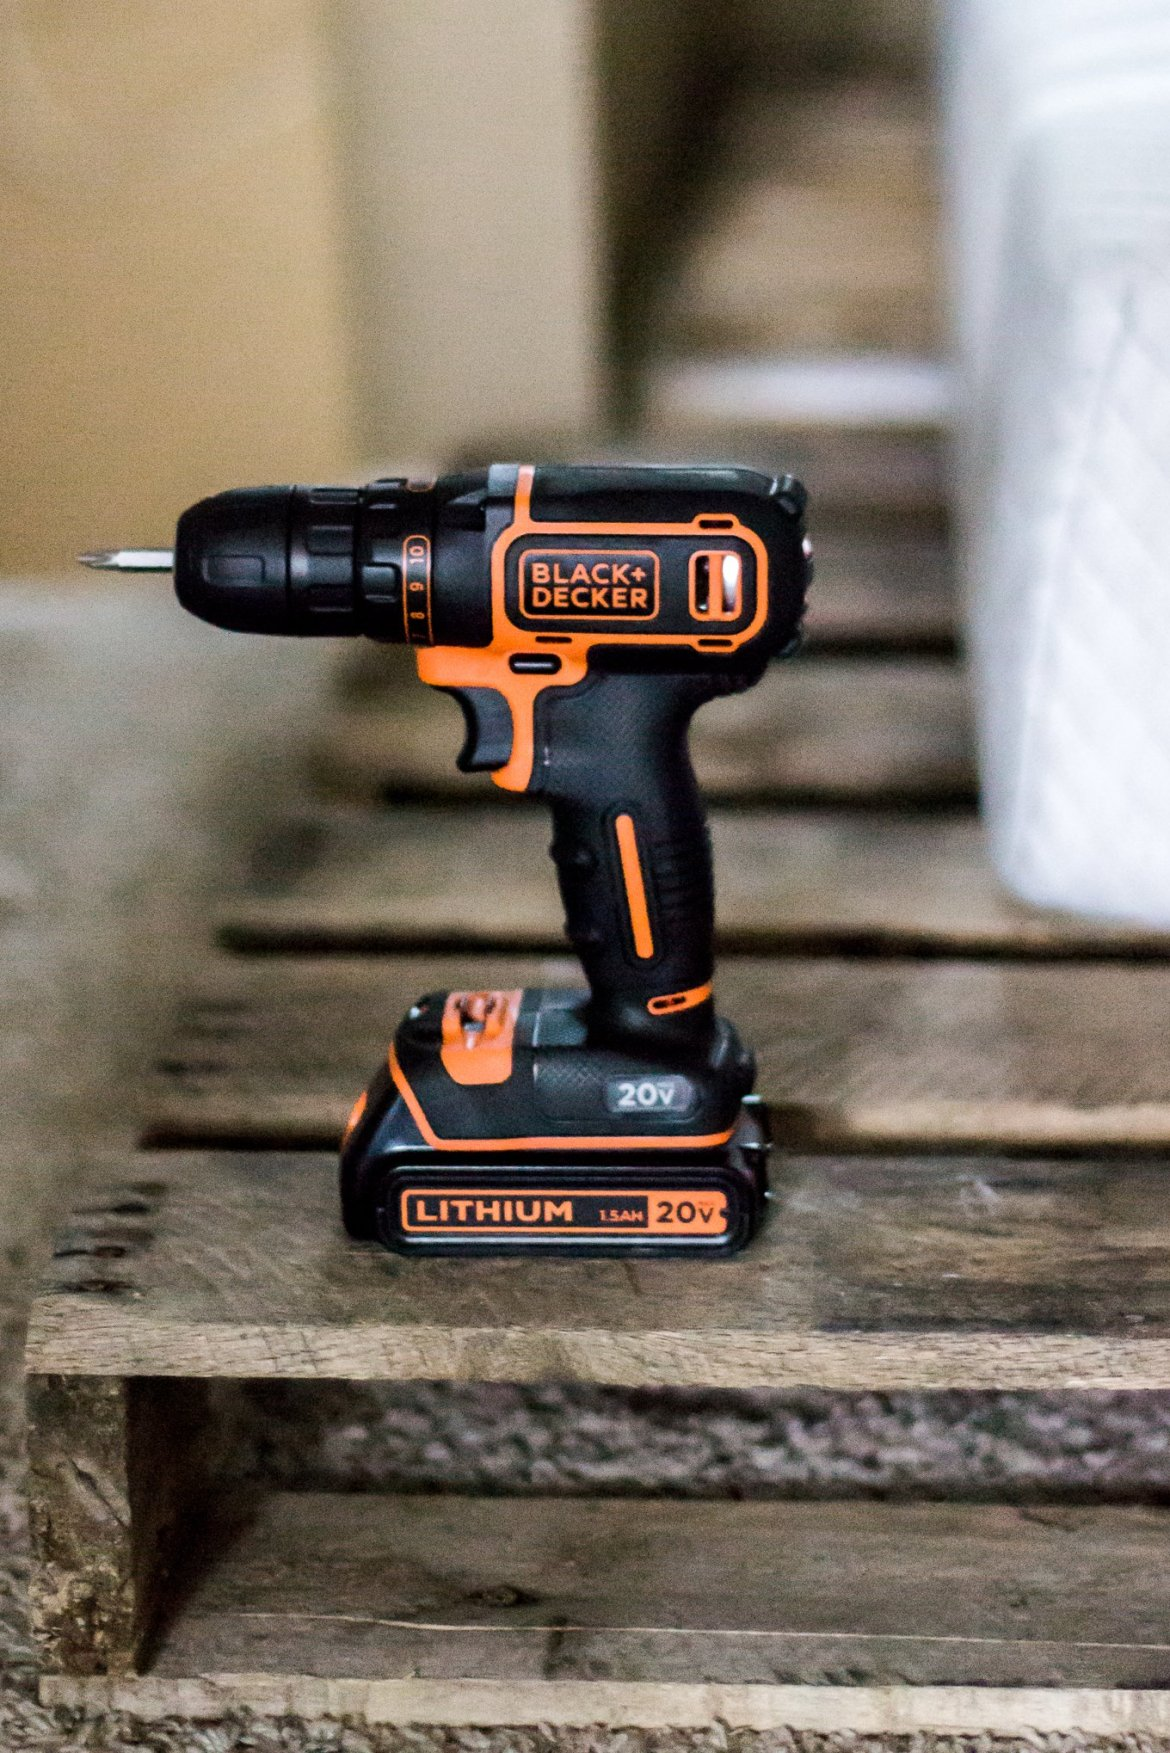 black+decker, black+decker drills, pallet bed frame, lifestyle blog, the kentucky gent